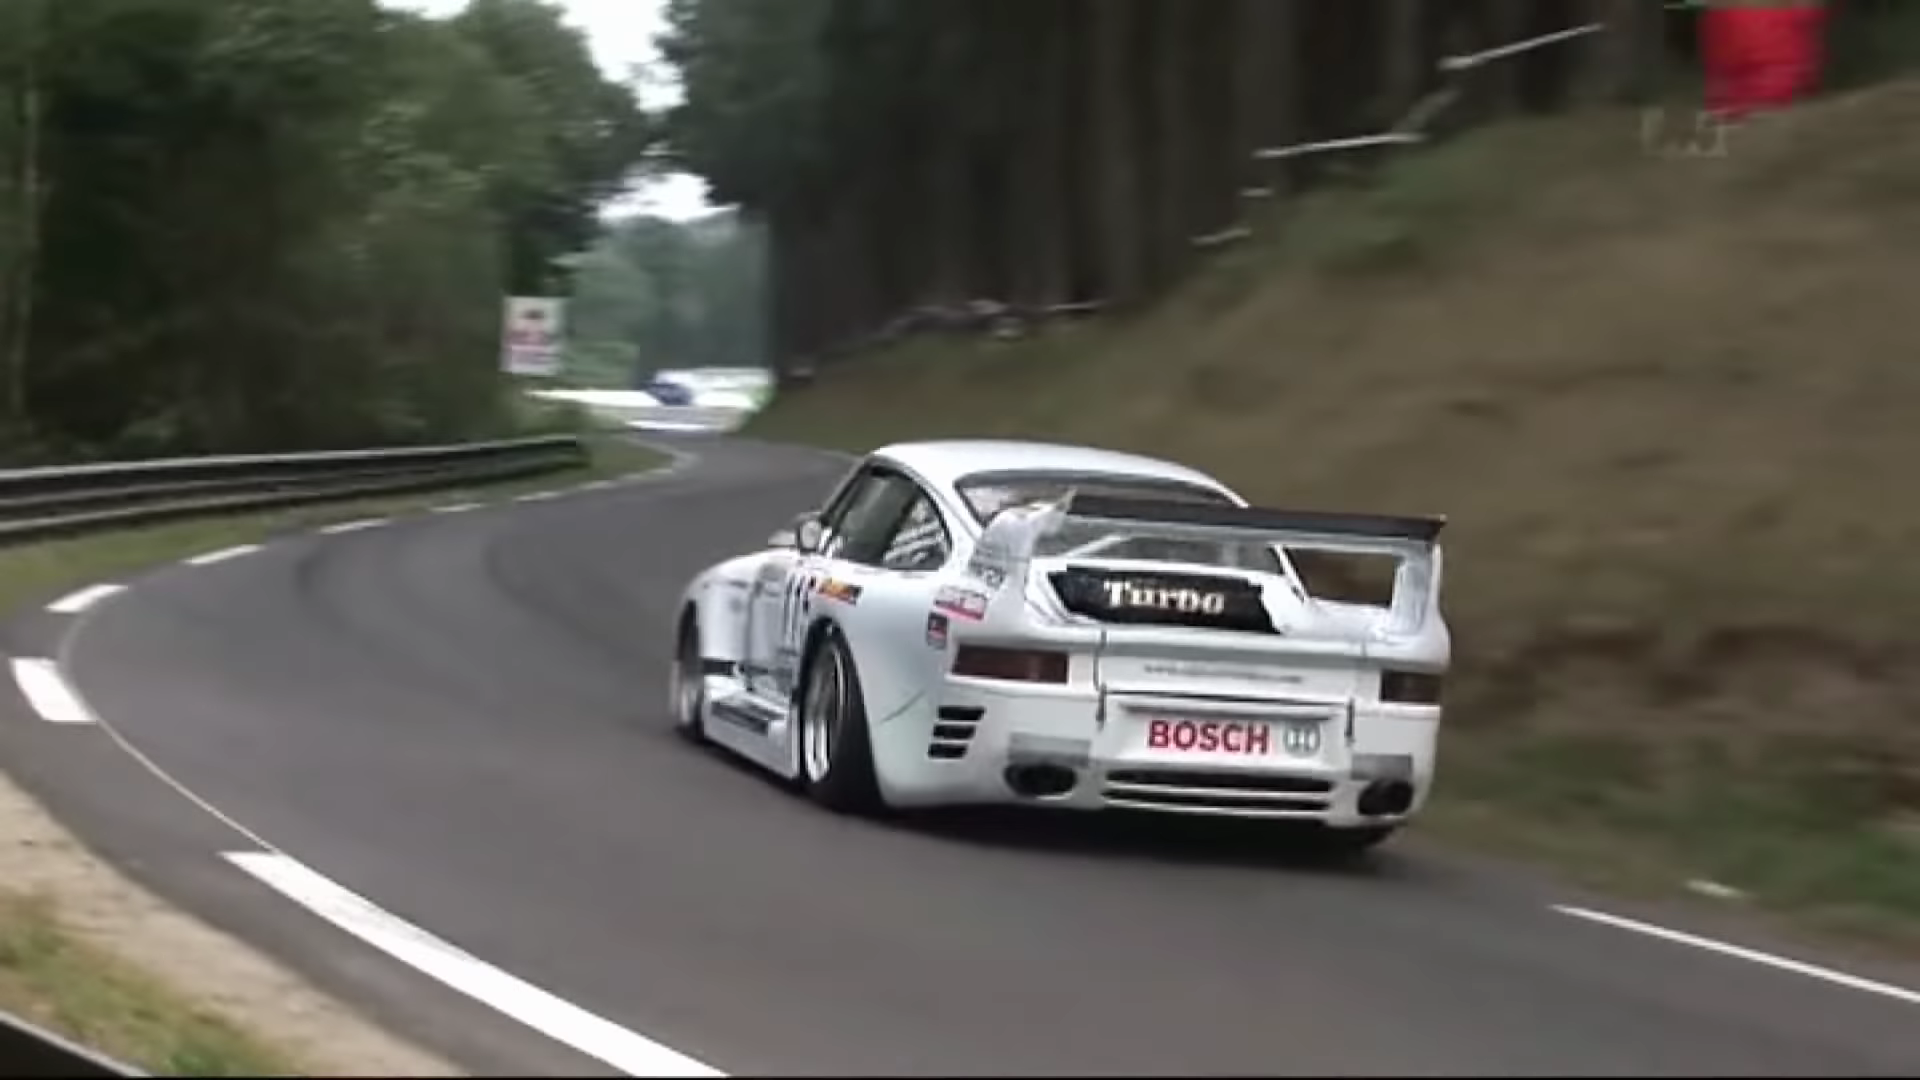 Ever Seen a 959 Running A Hillclimb? Now You Have